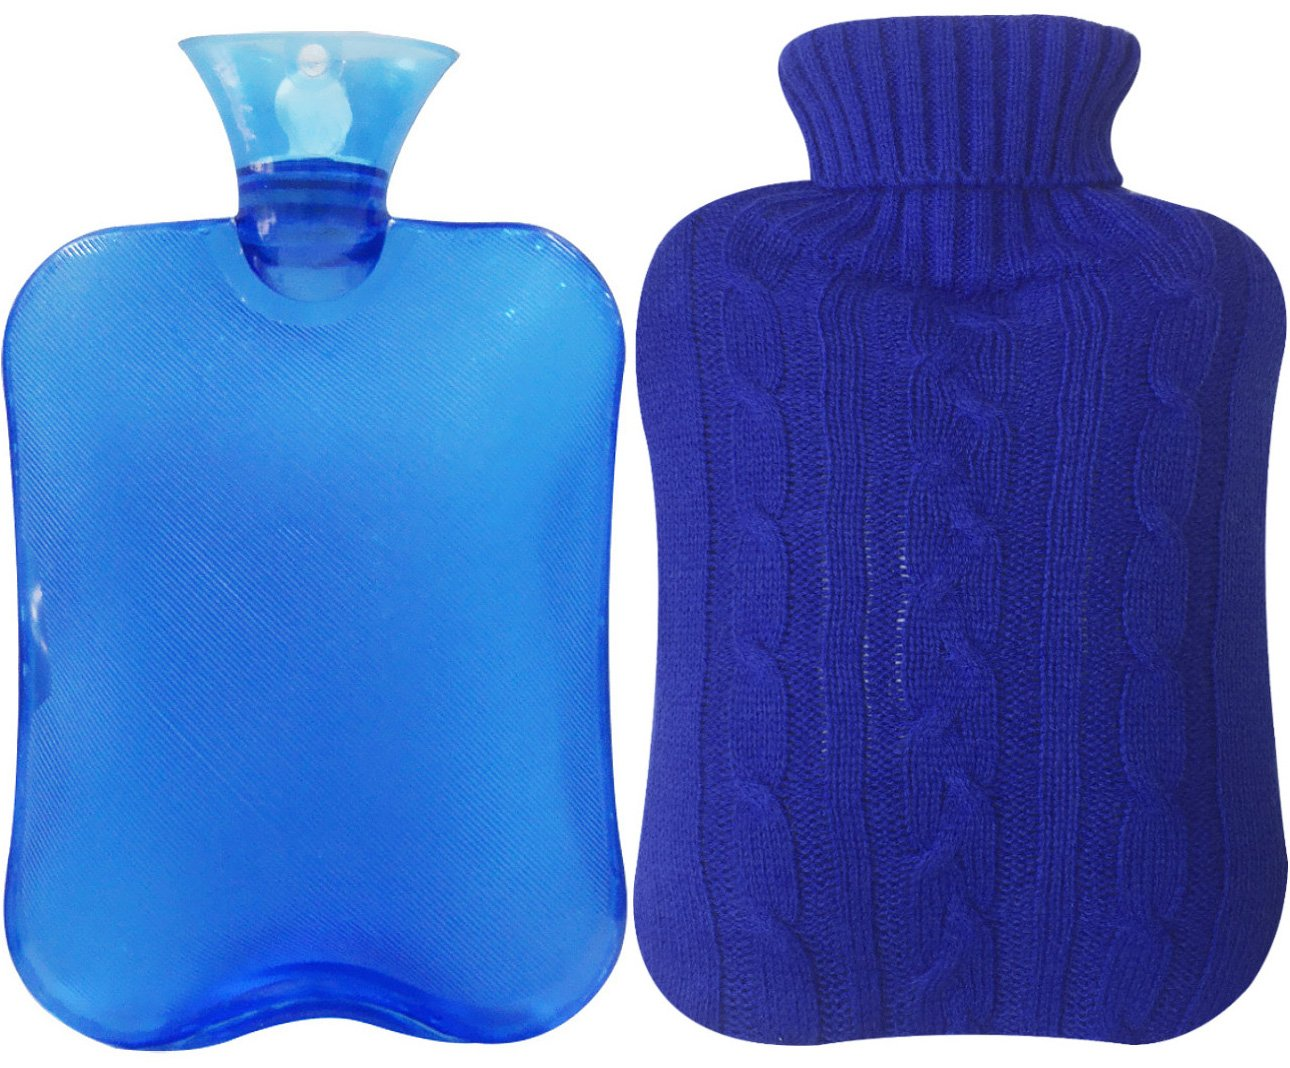 Attmu Classic Rubber Transparent Hot Water Bottle 2 Liter with Knit Cover - Blue by Attmu